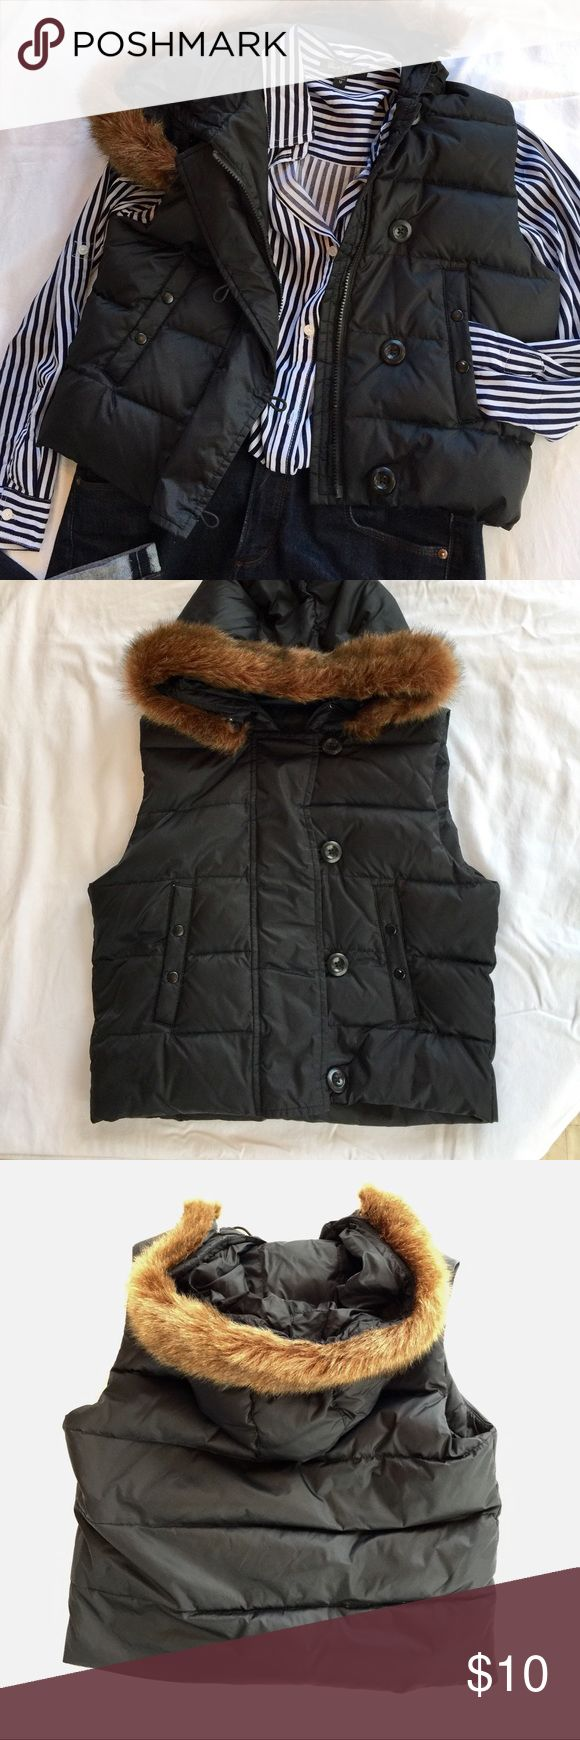 """GAP Short Black Down Vest Very cute GAP size M Black Down Vest. Non-removable hood has a removable imitation fur trim. Approximately 19"""" long. Falls to natural waist line. Zippered front with fabric overlap that buttons closed. Pockets on each side snap closed. One interior pocket with Velcro closure.    Shell 100% nylon. Lining 100% poly. 75% down filling. There is a tiny white mark on one of the pocket snaps- Black marker may cover it? See last pic. No Trades GAP Jackets & Coats Vests"""